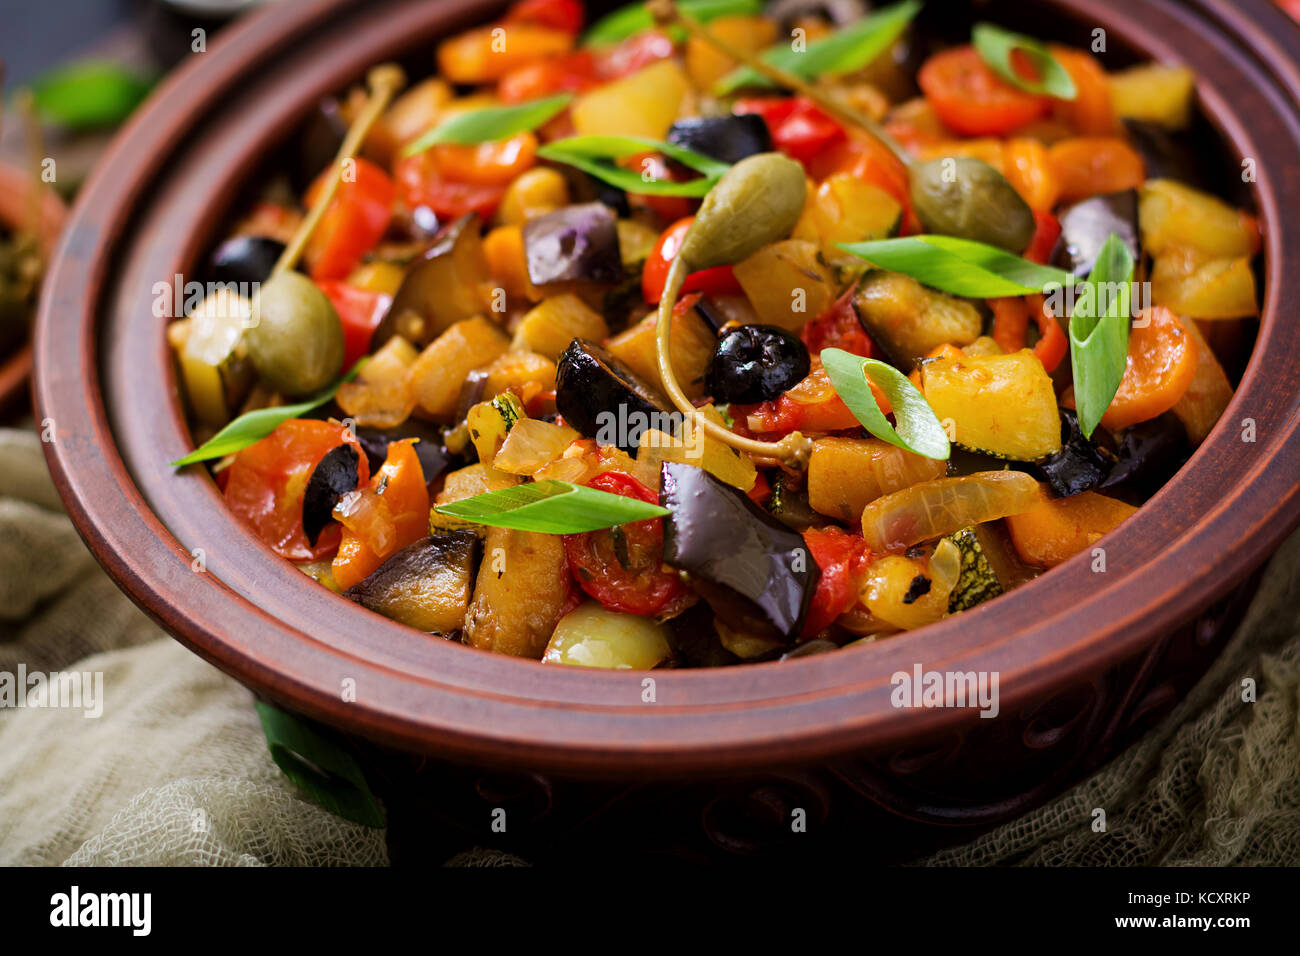 sex spicy stew caponata l 39 aubergine la courgette poivron tomate carotte oignon olives et. Black Bedroom Furniture Sets. Home Design Ideas